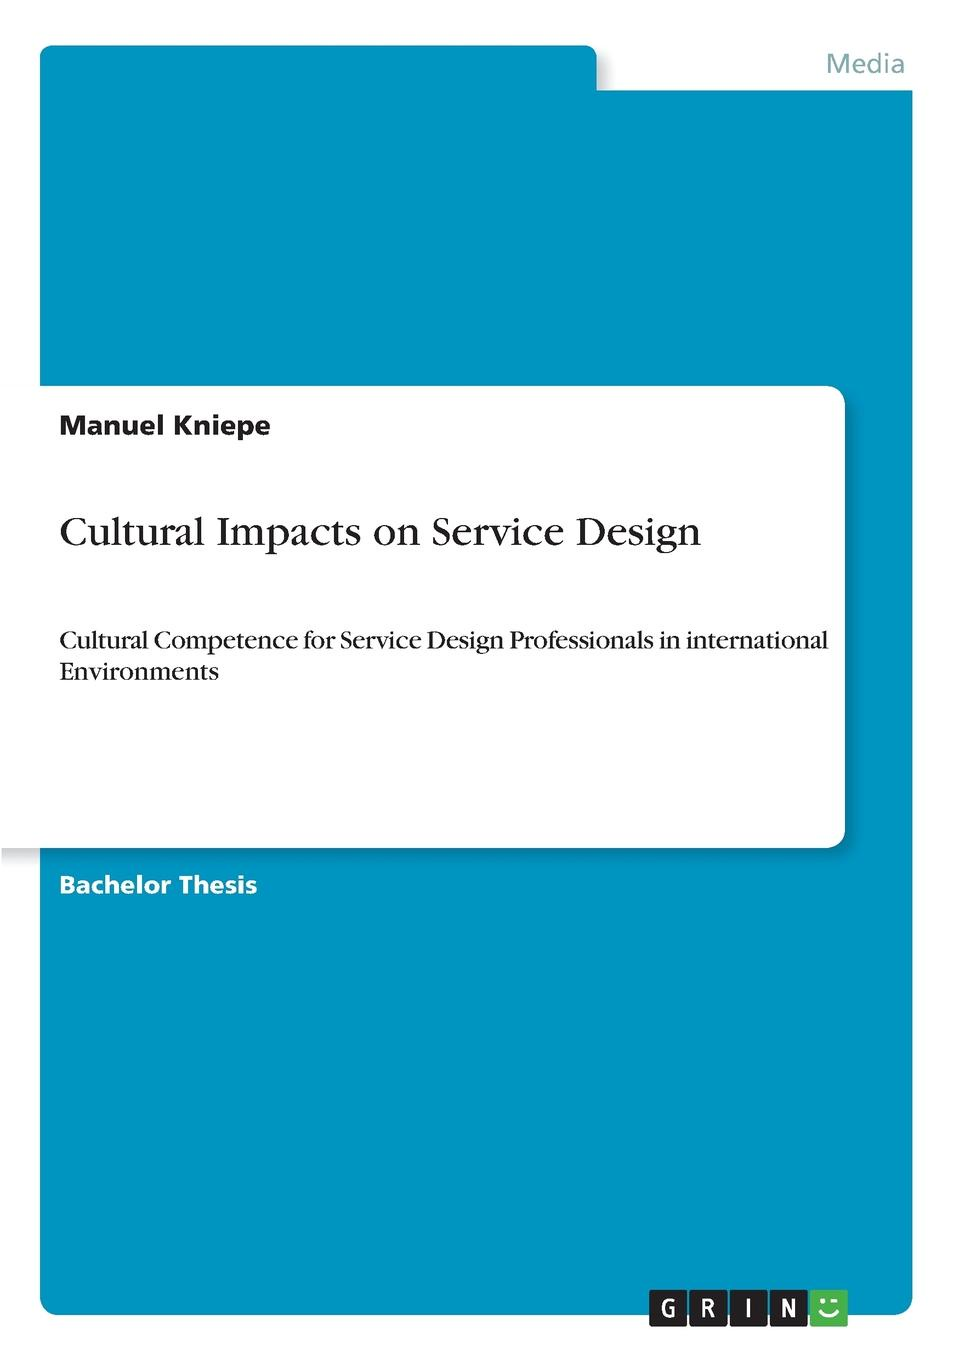 Manuel Kniepe Cultural Impacts on Service Design halil kiymaz market microstructure in emerging and developed markets price discovery information flows and transaction costs